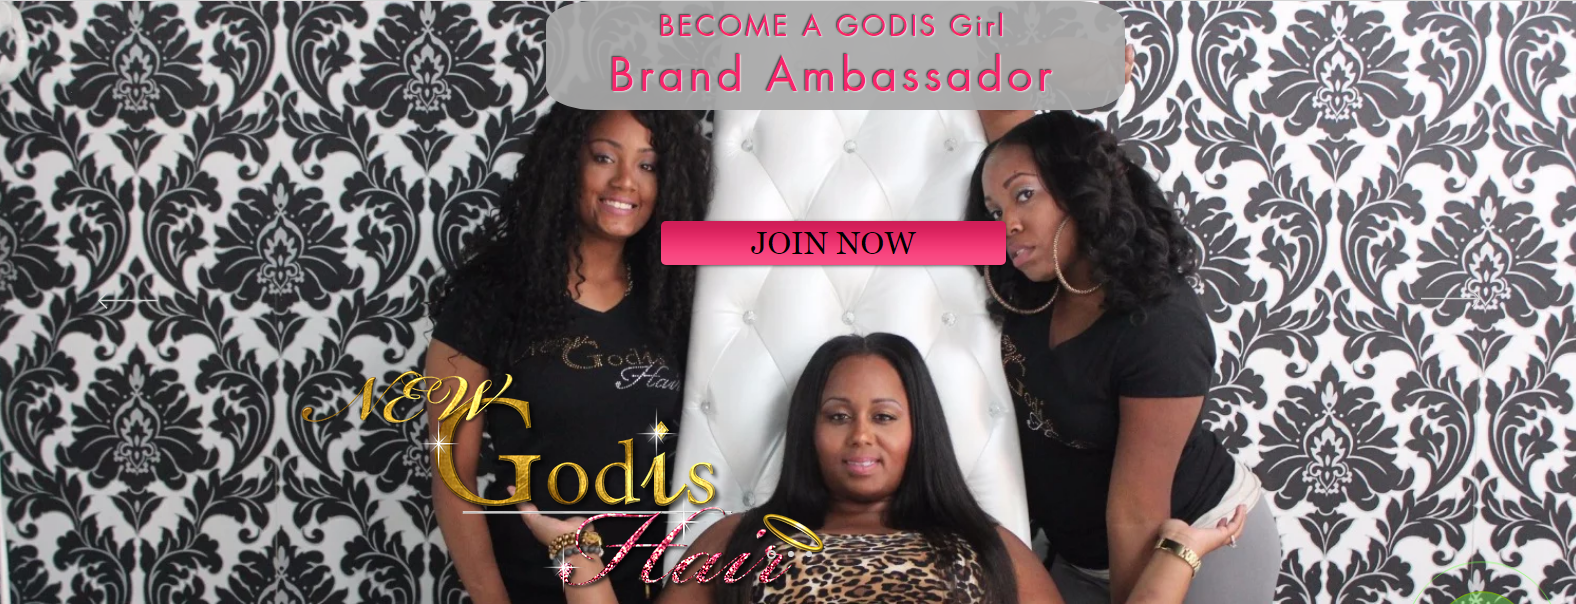 Join Us - Become a New Godis Hair Brand Ambassador